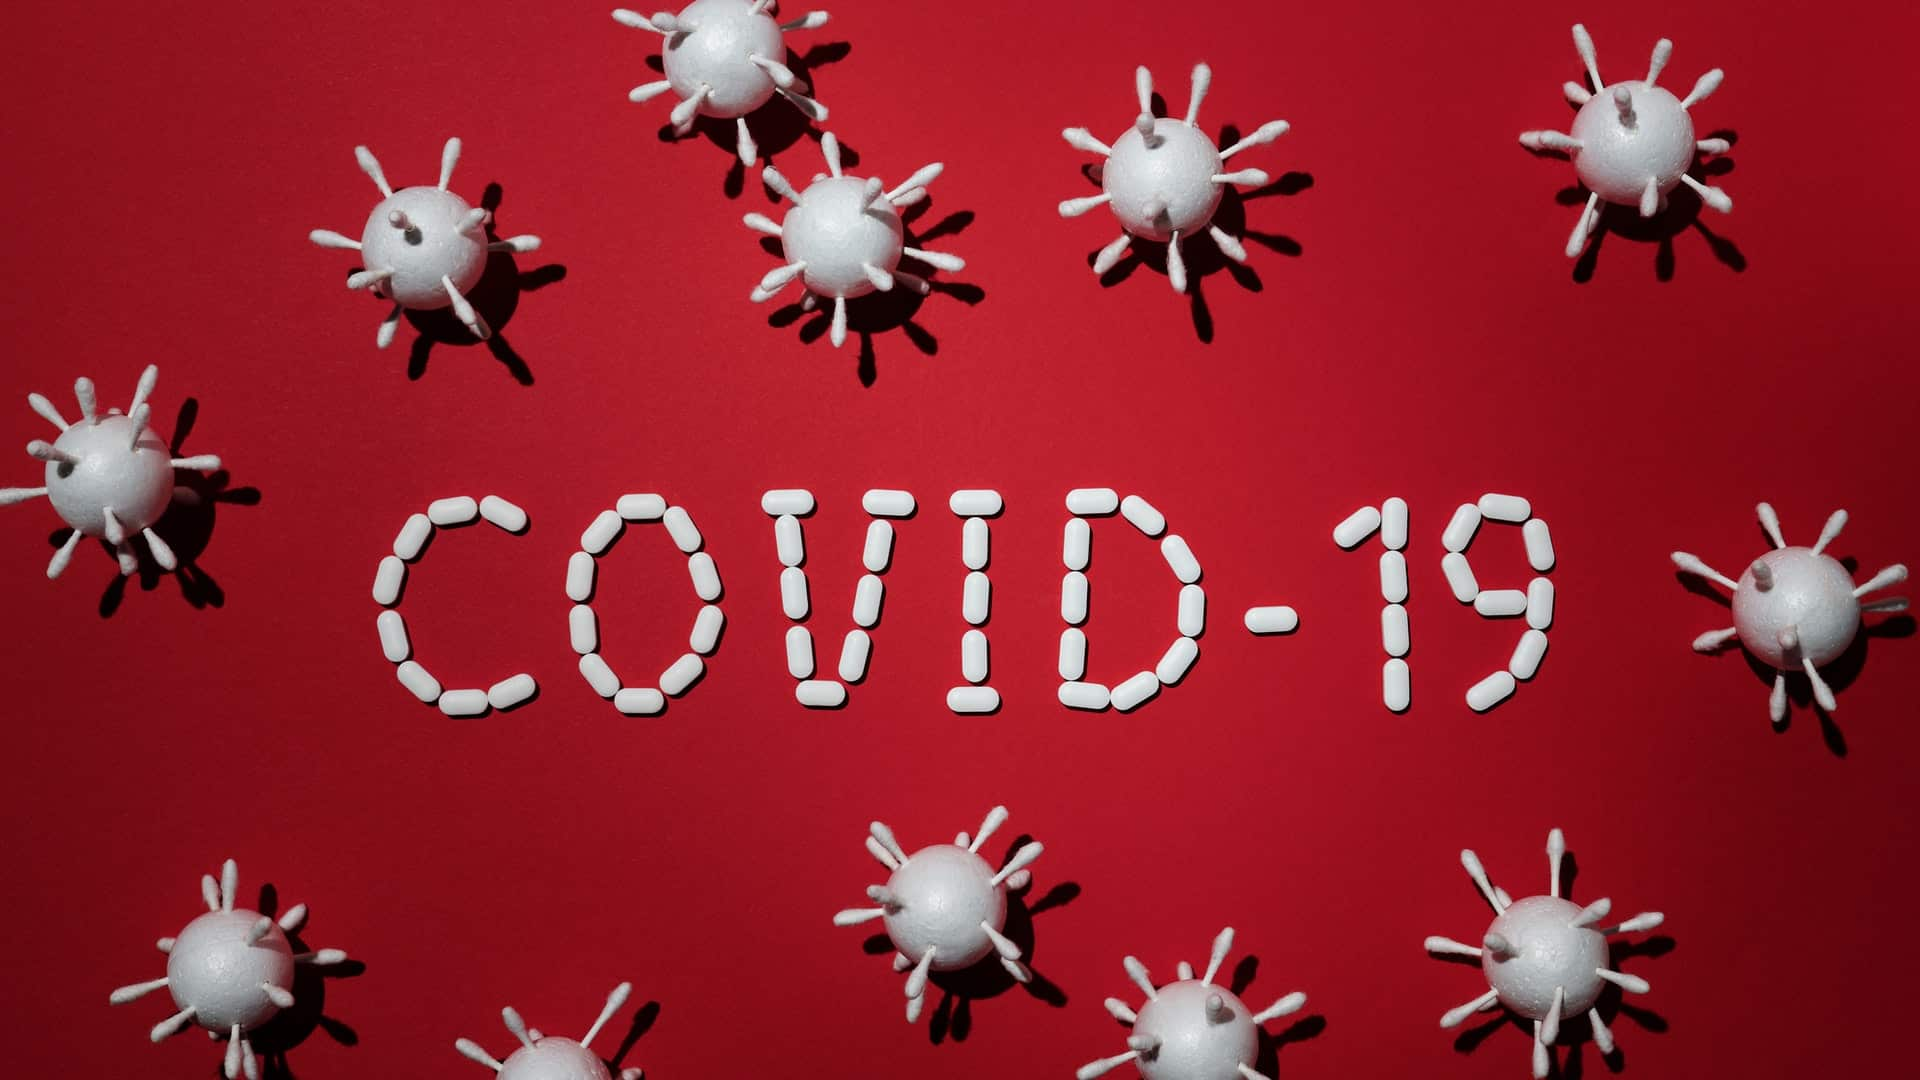 WHO revives inquiry into COVID-19 origins, new team of scientists to investigate